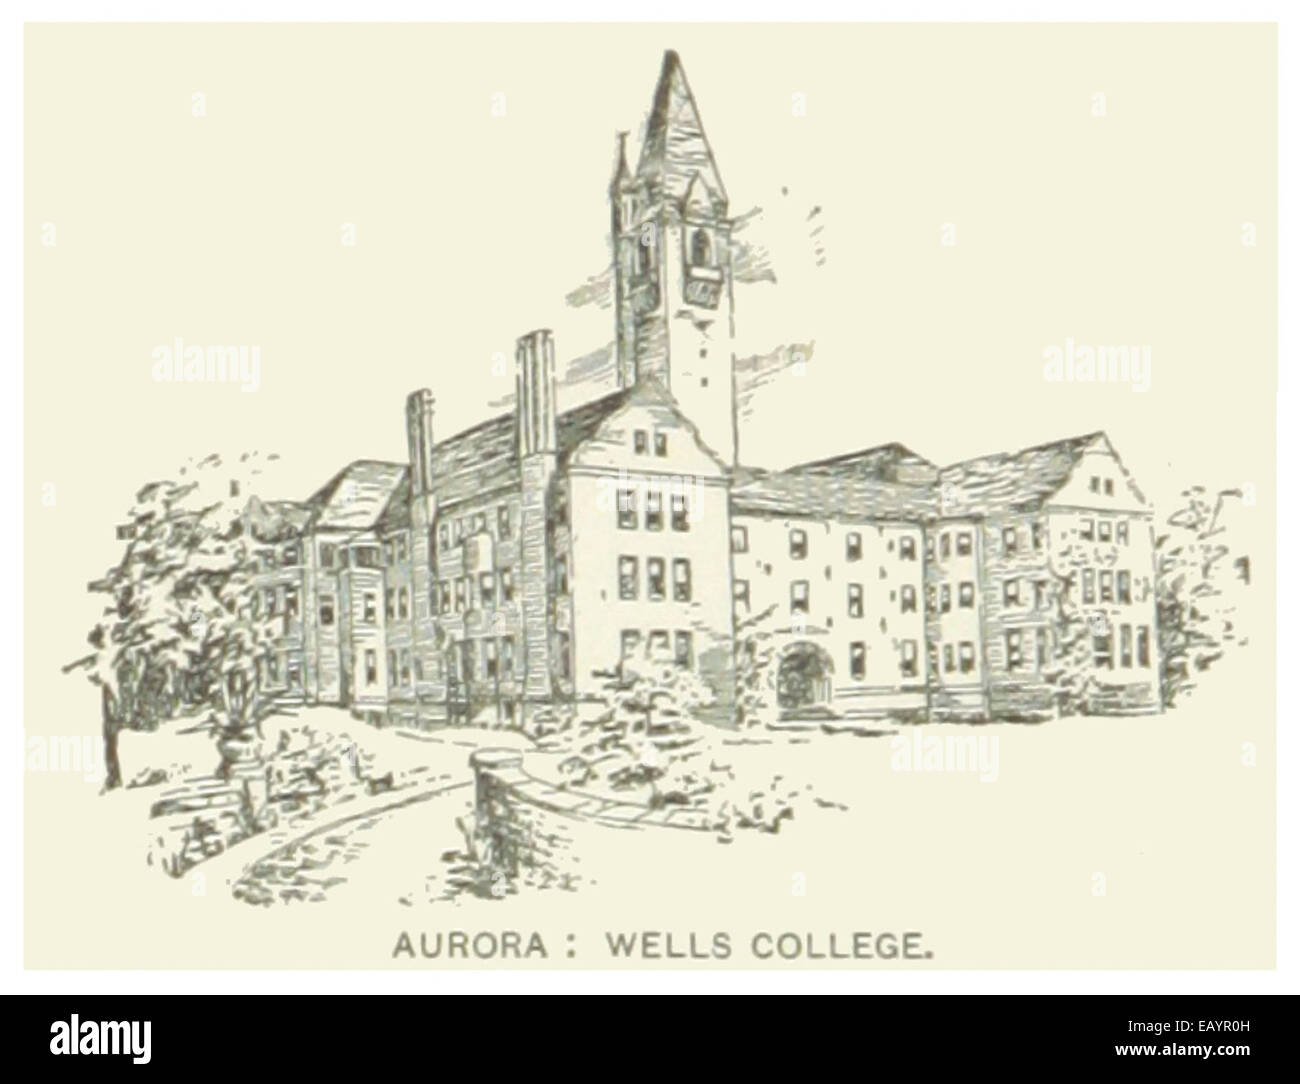 US-NY(1891) p600 AURORA, WELLS COLLEGE - Stock Image